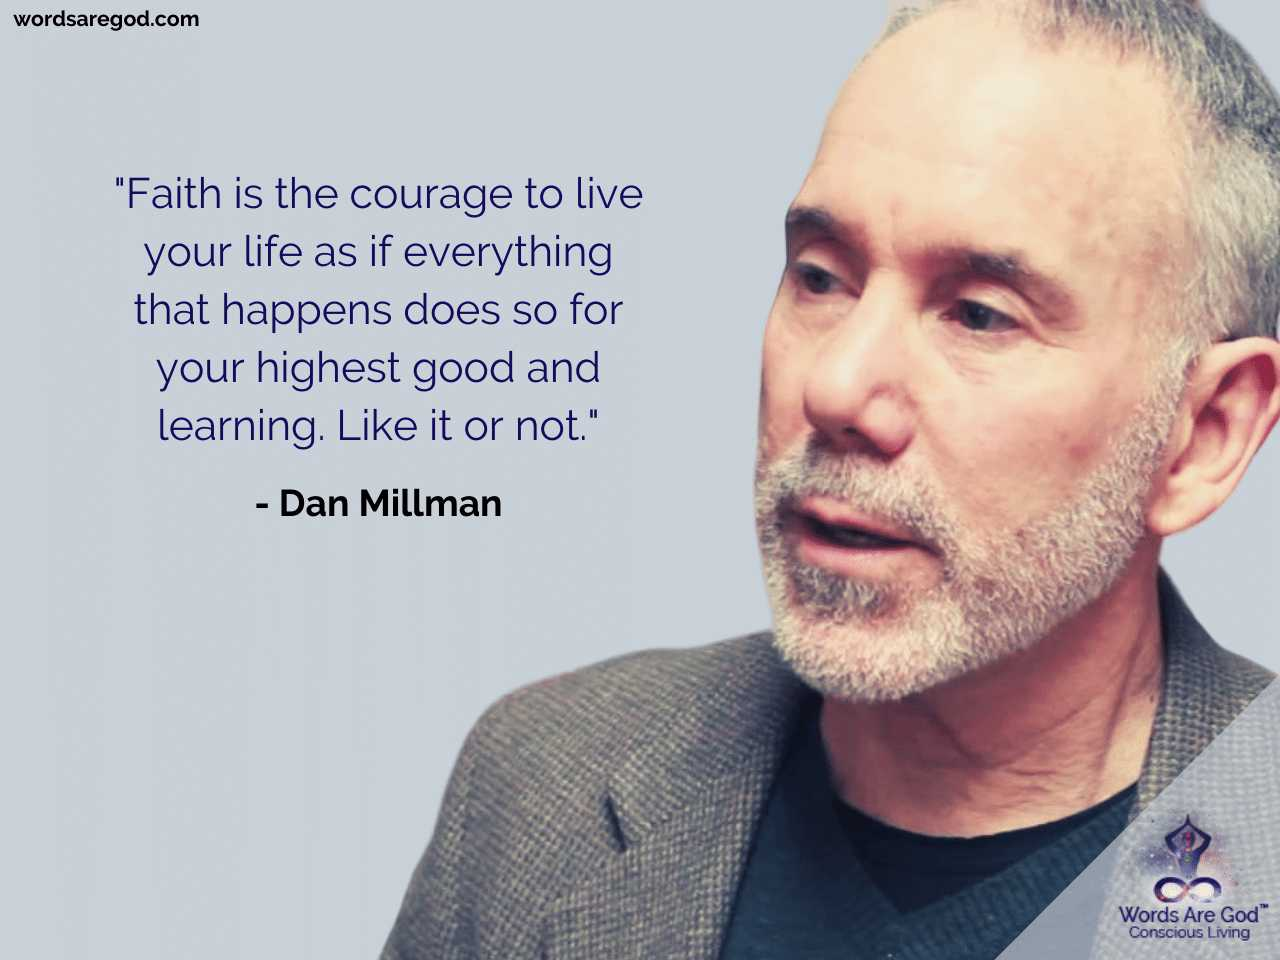 Dan Millman Motivational Quote